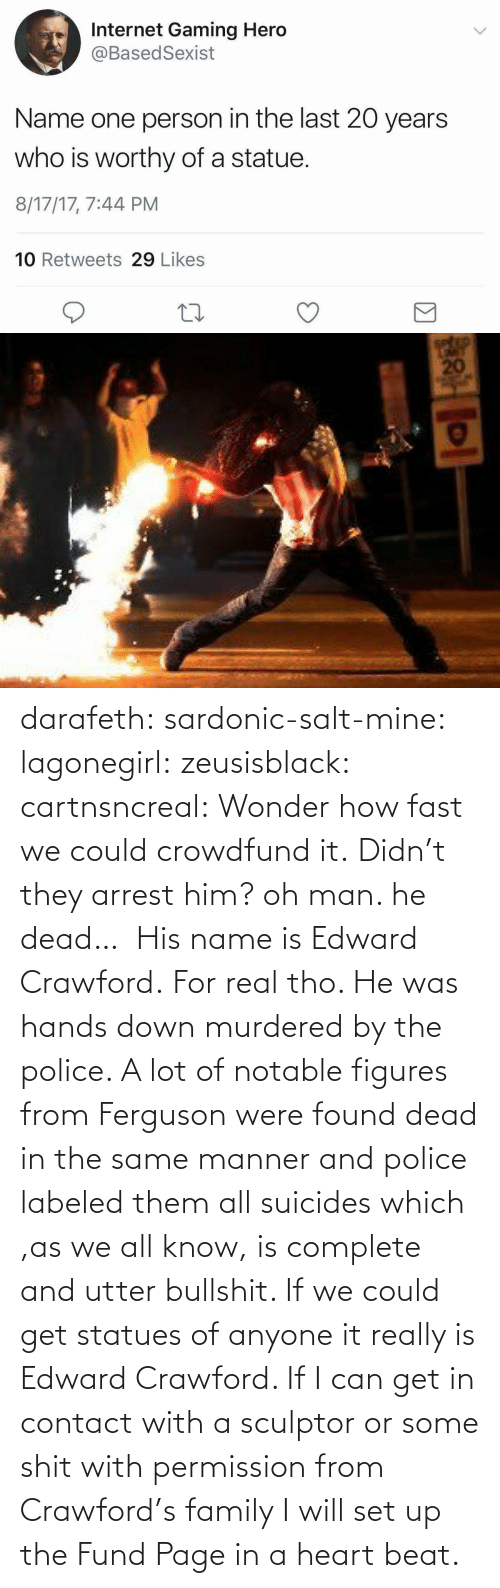 were: darafeth: sardonic-salt-mine:  lagonegirl:  zeusisblack:  cartnsncreal:   Wonder how fast we could crowdfund it.    Didn't they arrest him?  oh man. he dead…   His name is Edward Crawford.   For real tho. He was hands down murdered by the police. A lot of notable figures from Ferguson were found dead in the same manner and police labeled them all suicides which ,as we all know, is complete and utter bullshit.  If we could get statues of anyone it really is Edward Crawford. If I can get in contact with a sculptor or some shit with permission from Crawford's family I will set up the Fund Page in a heart beat.